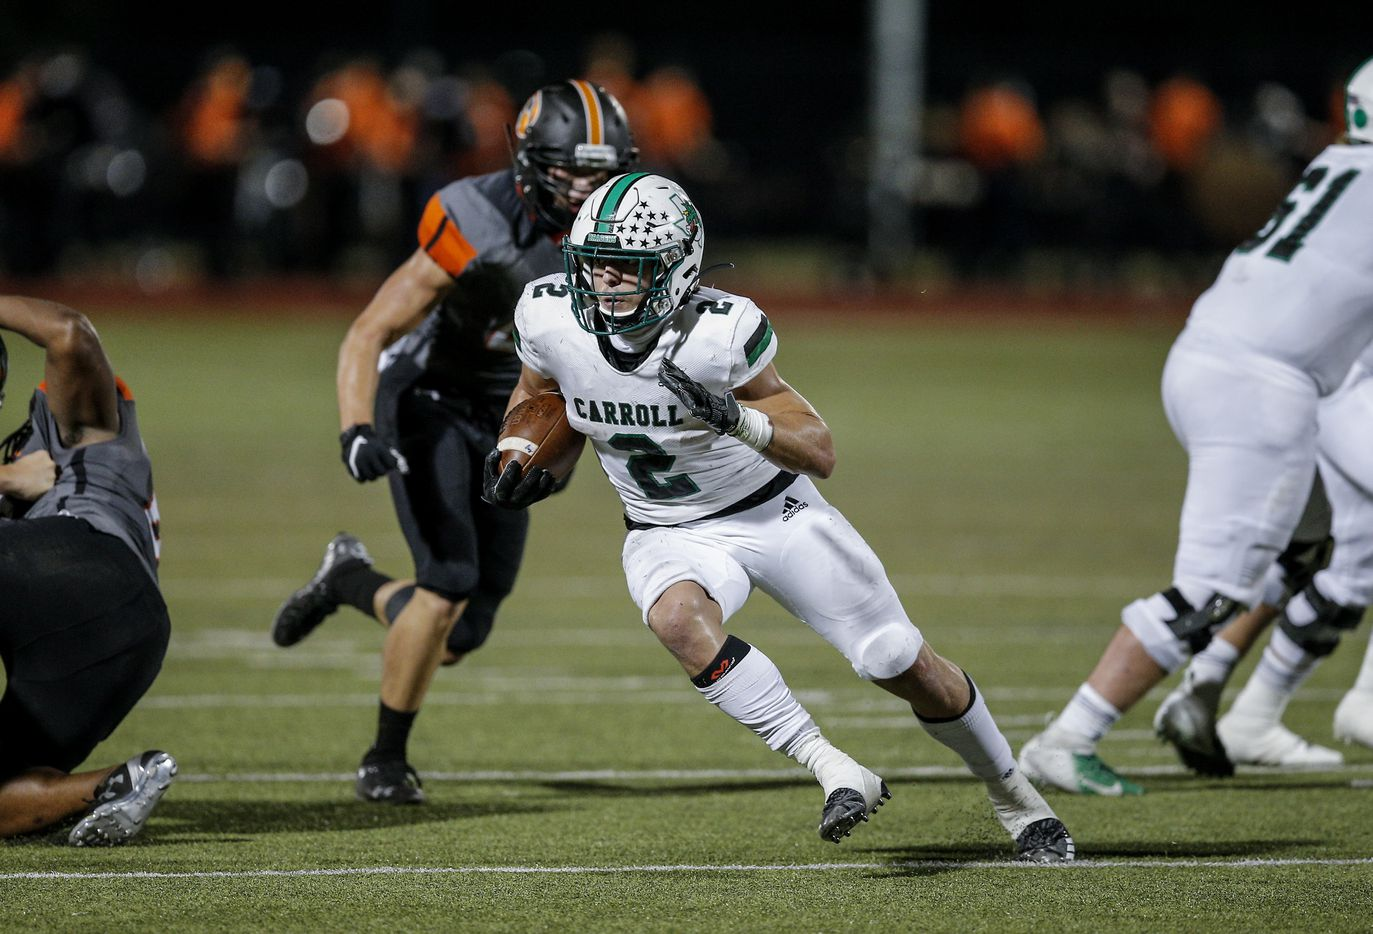 Southlake Carroll sophomore running back Owen Allen (2) carries the ball during the first half of a high school football game against Rockwall at Wilkerson-Sanders Stadium in Rockwall, Thursday, October 8, 2020. (Brandon Wade/Special Contributor)